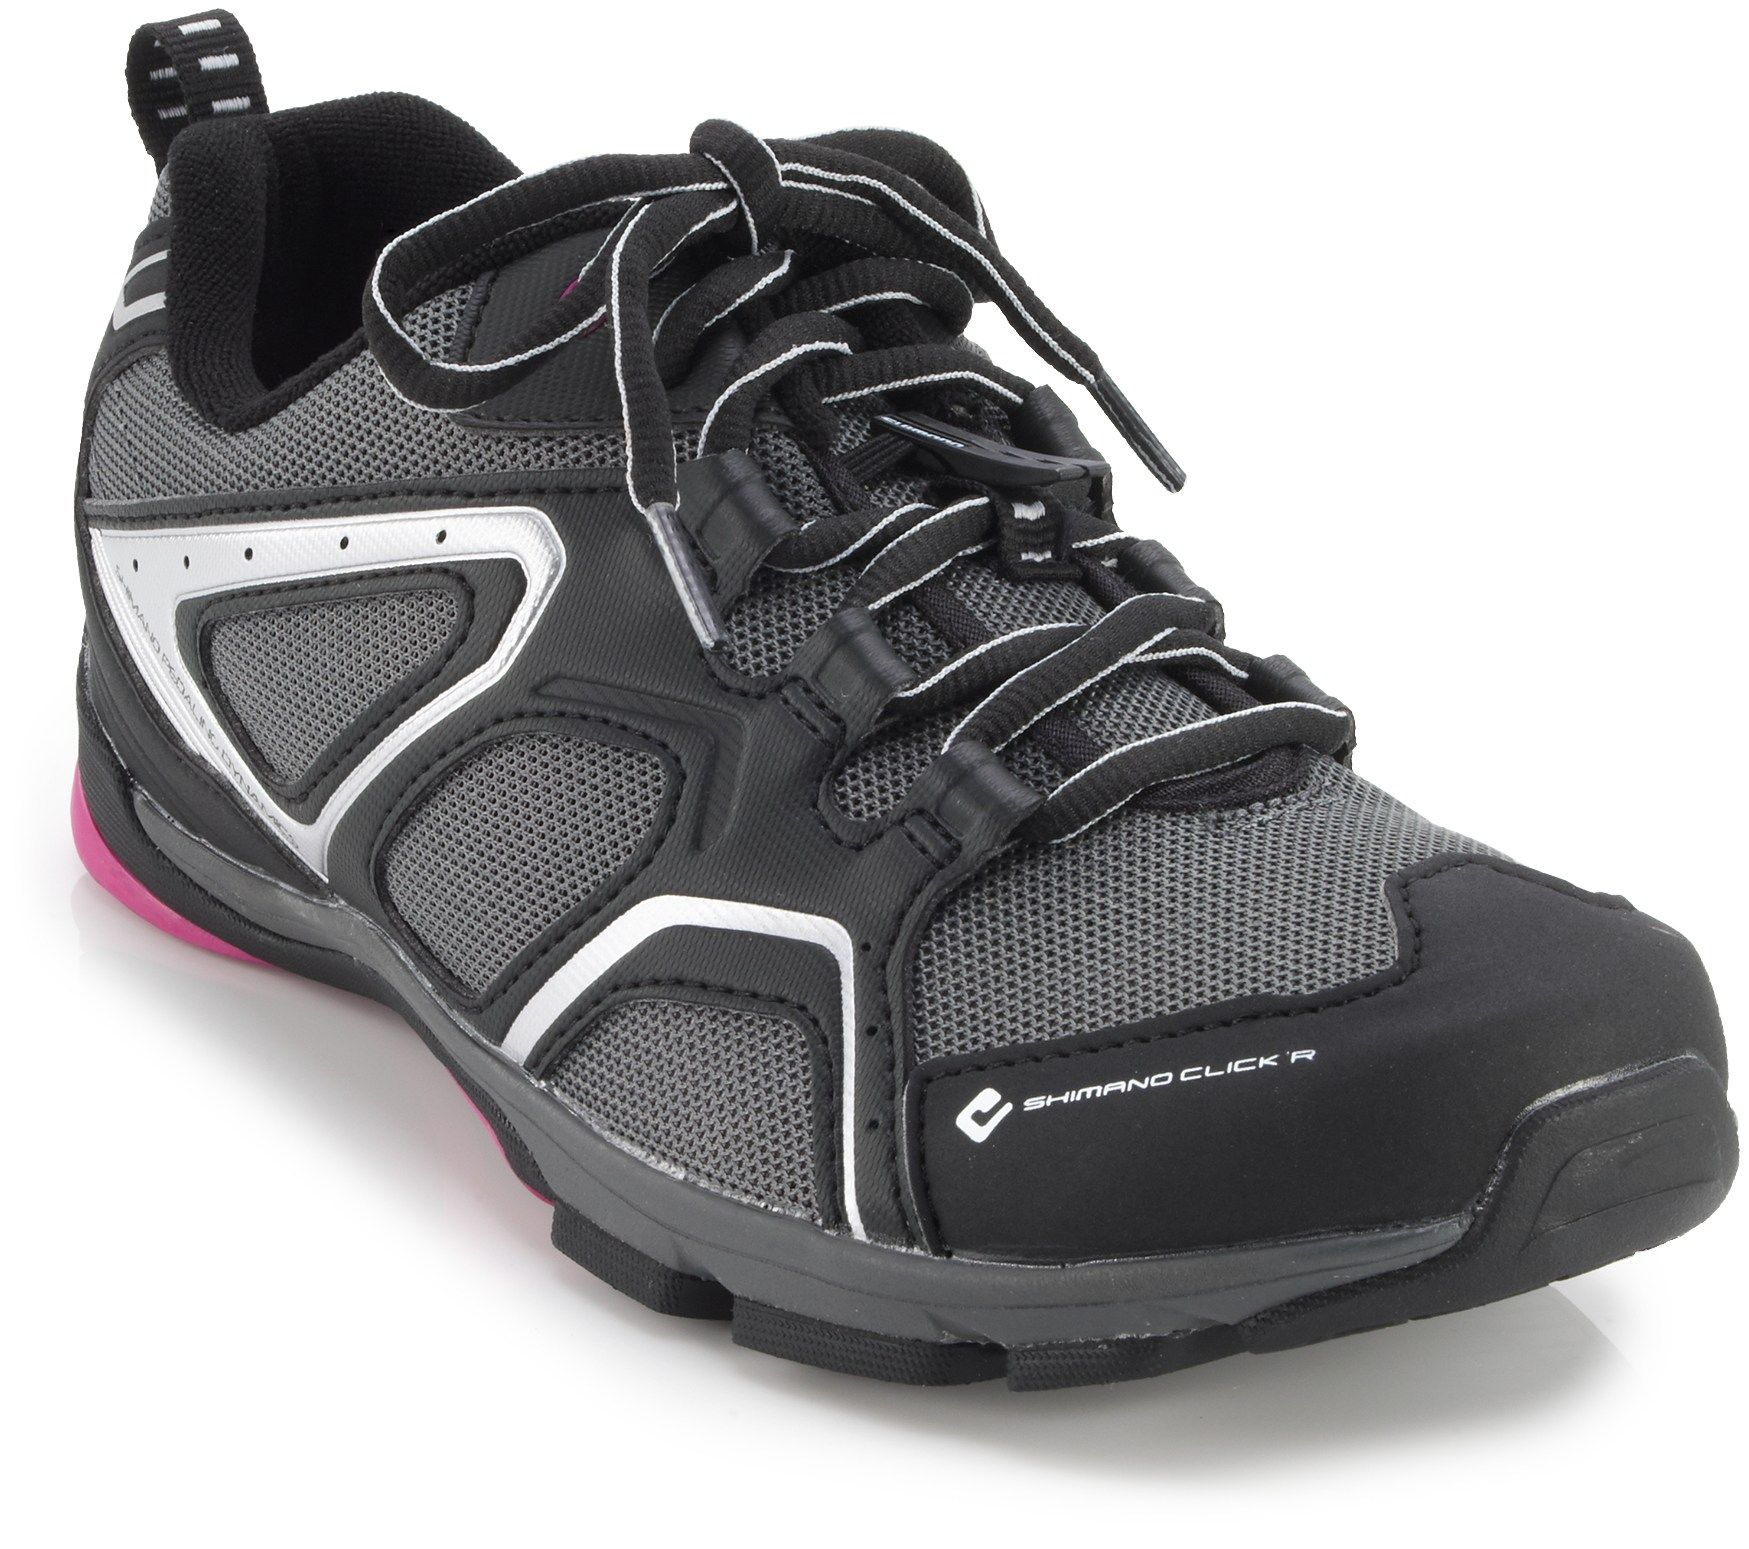 Shimano Click R Cw40 Bike Shoes Women S Bike Shoes Women